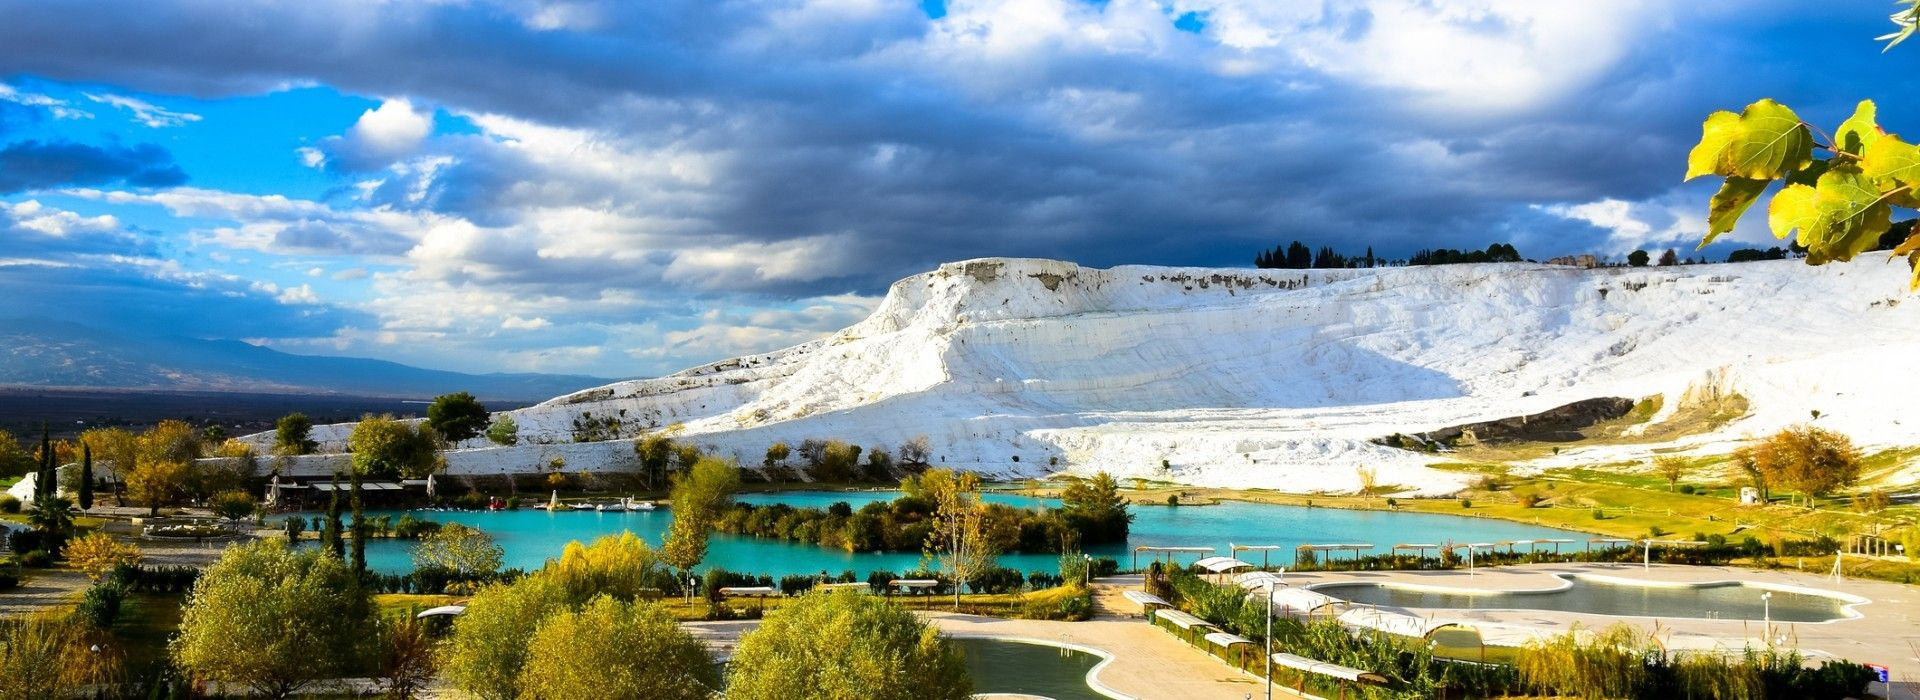 Art and architecture Tours in Turkey